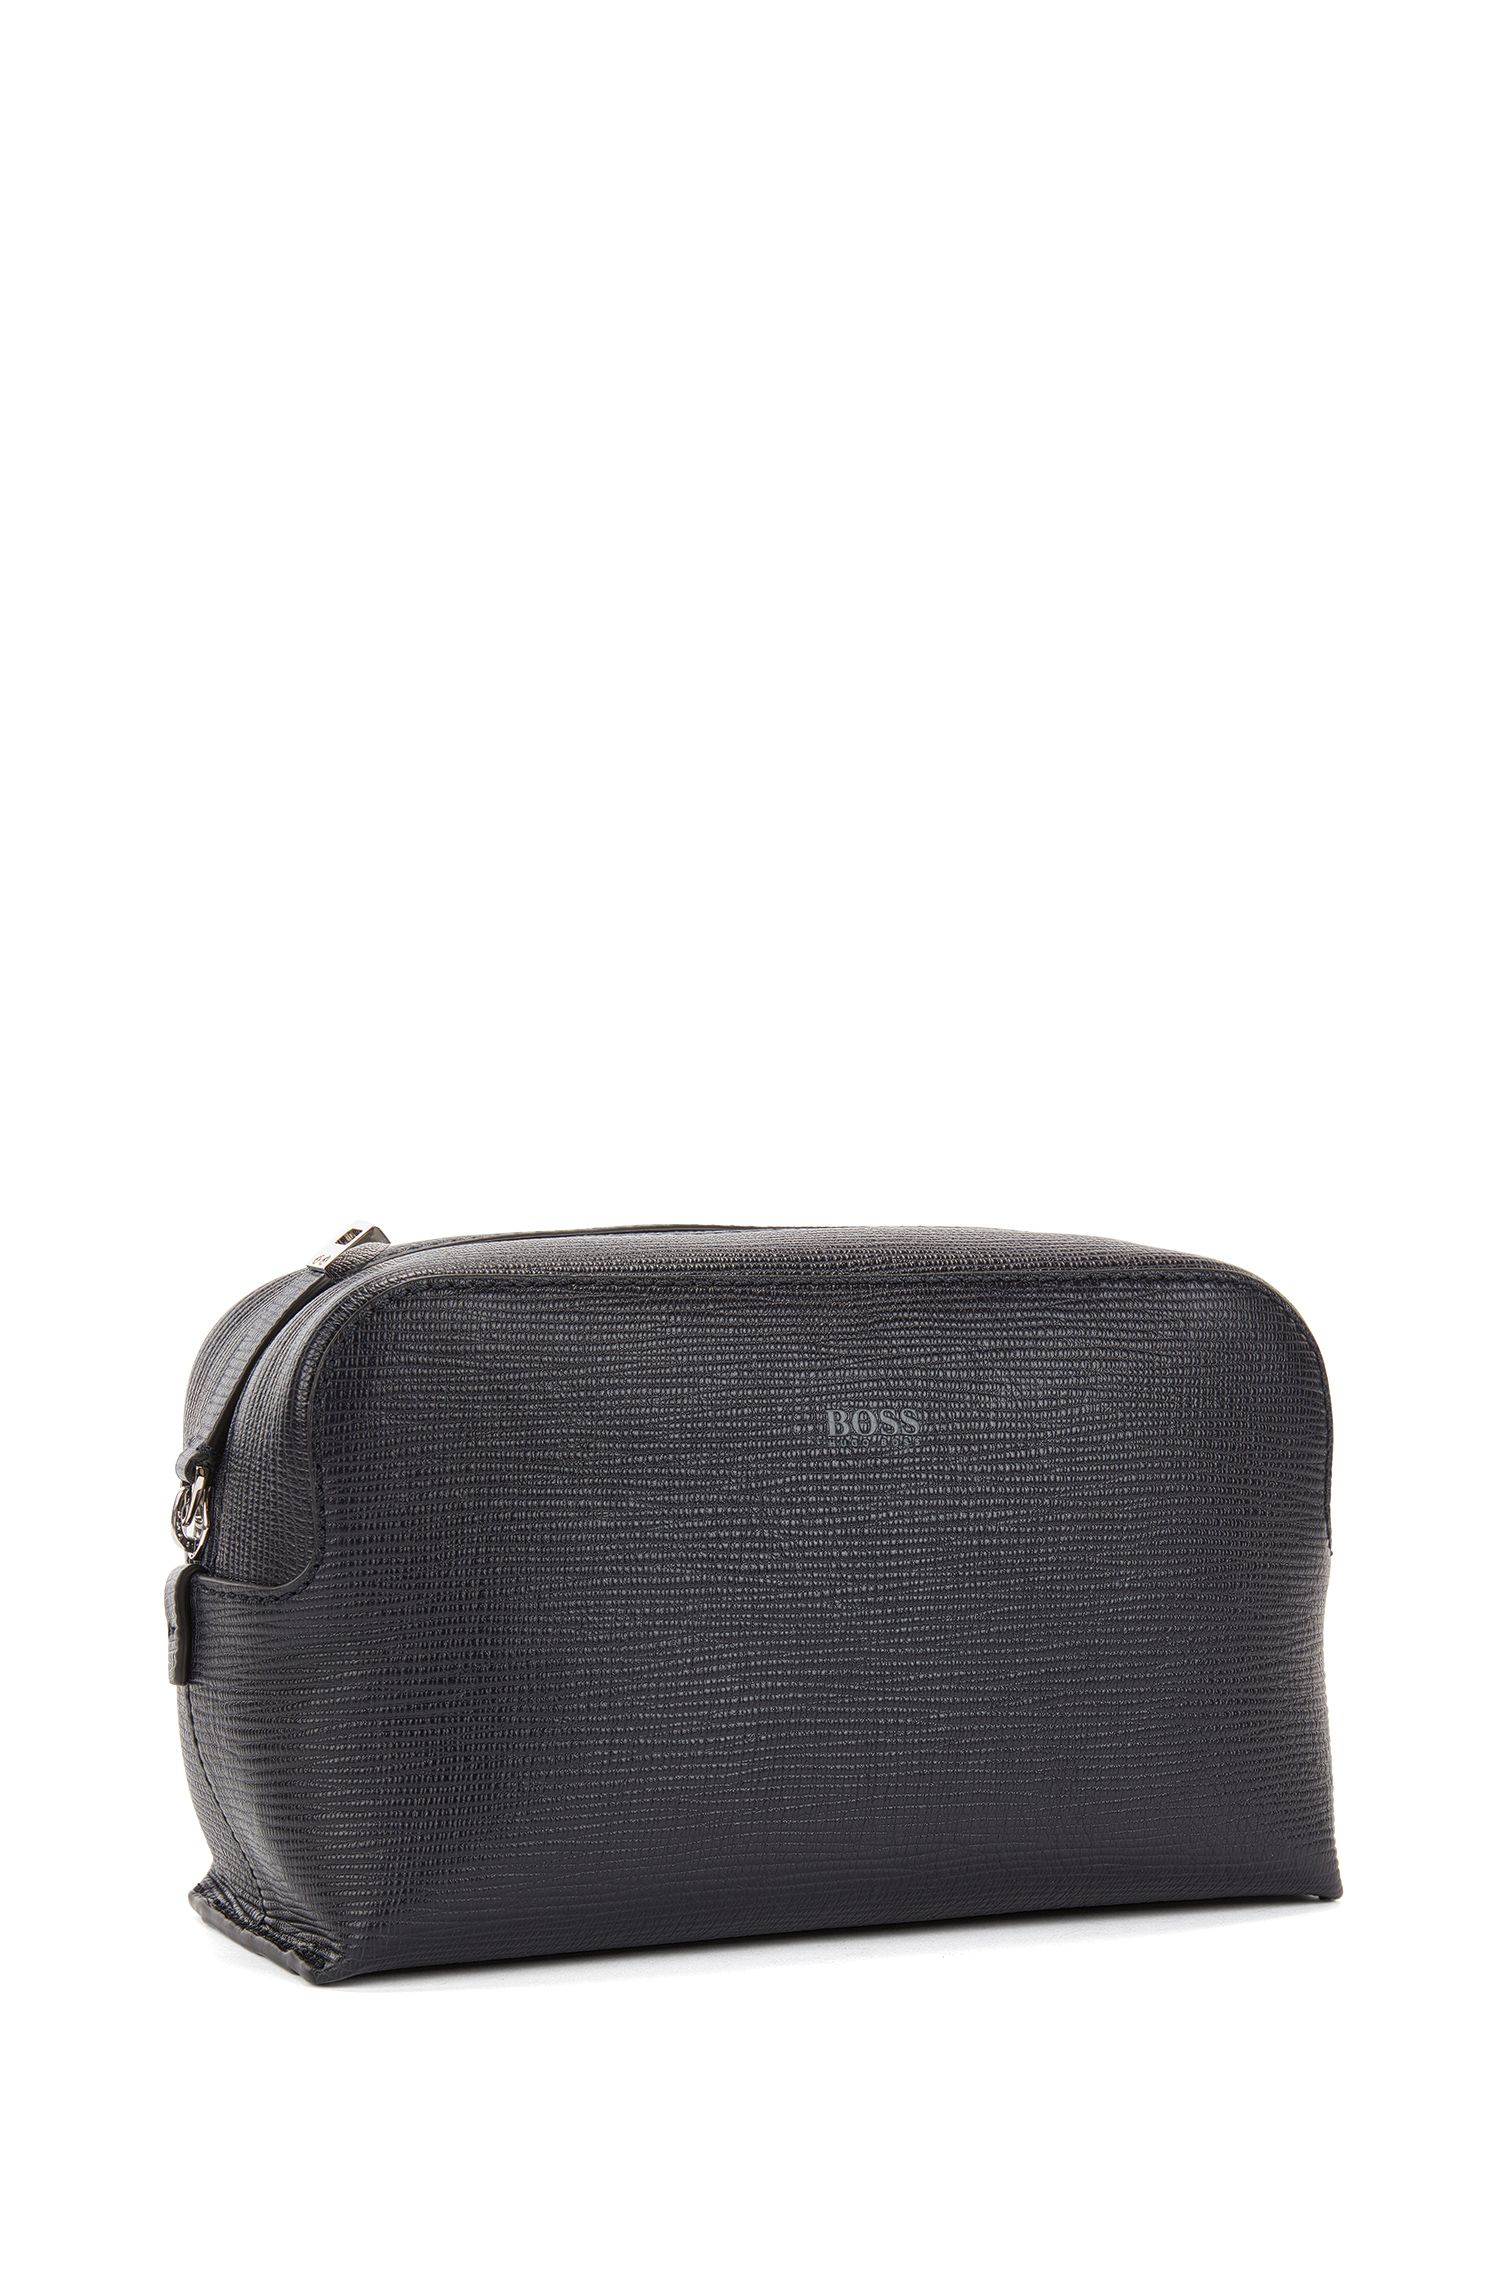 Wash bag in printed Italian leather